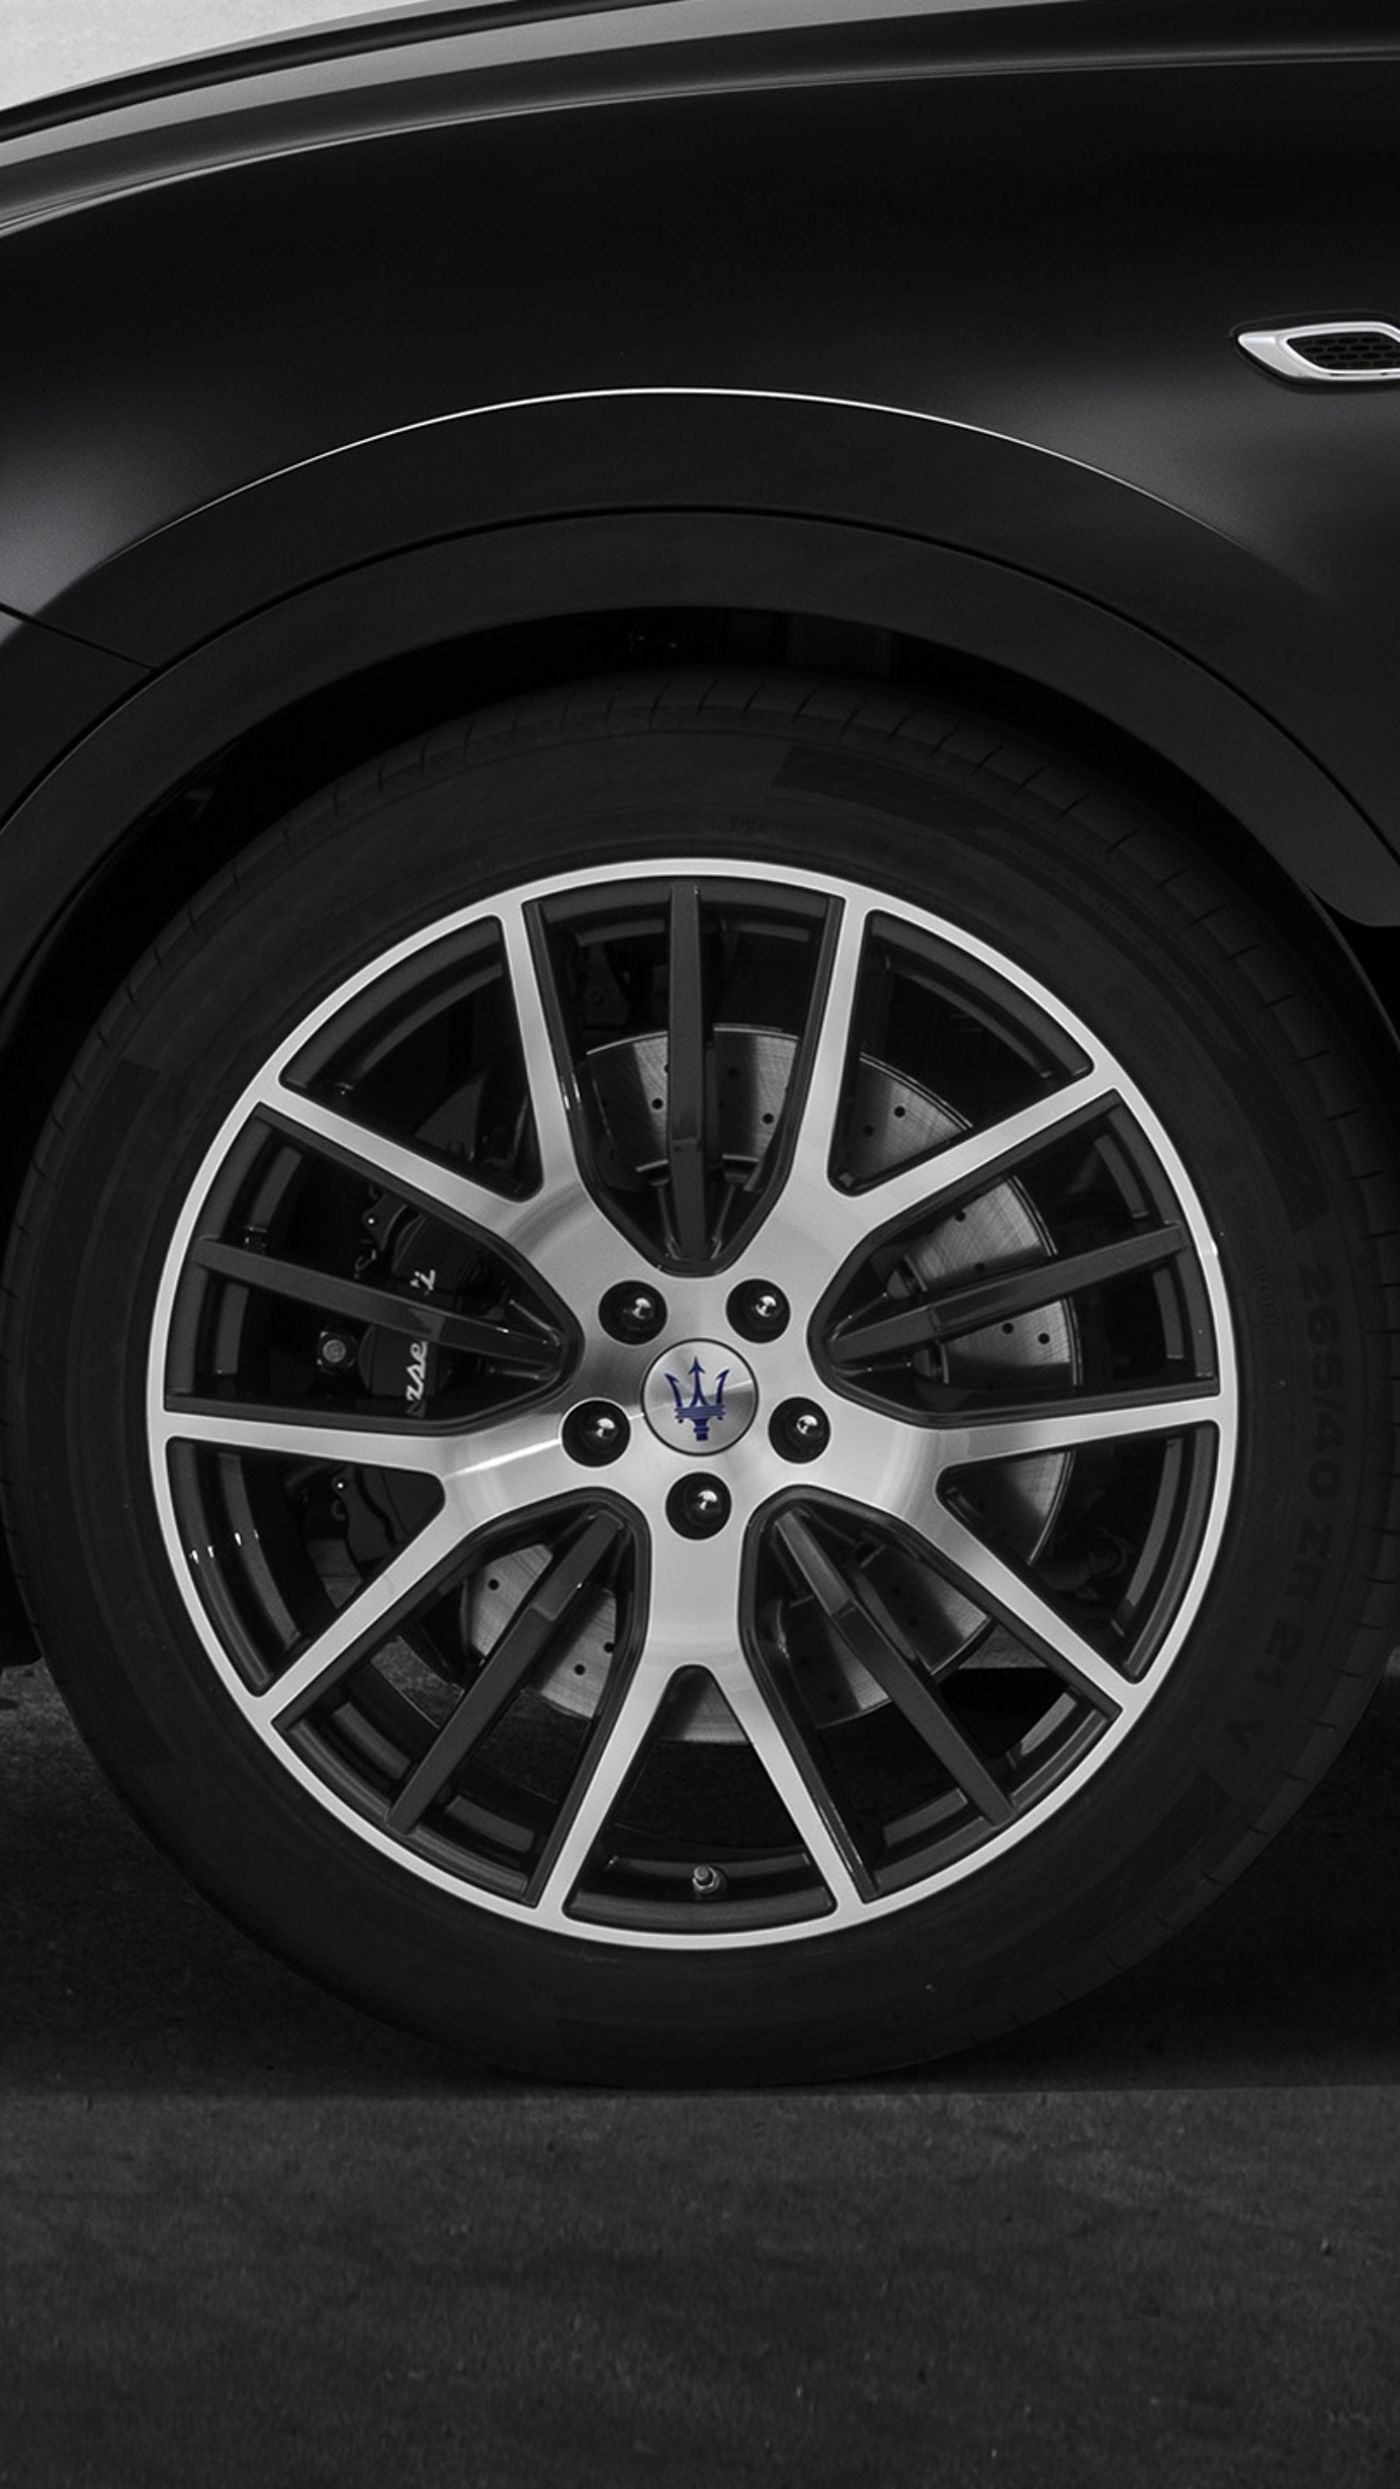 Maserati tyres and rims, silver and black